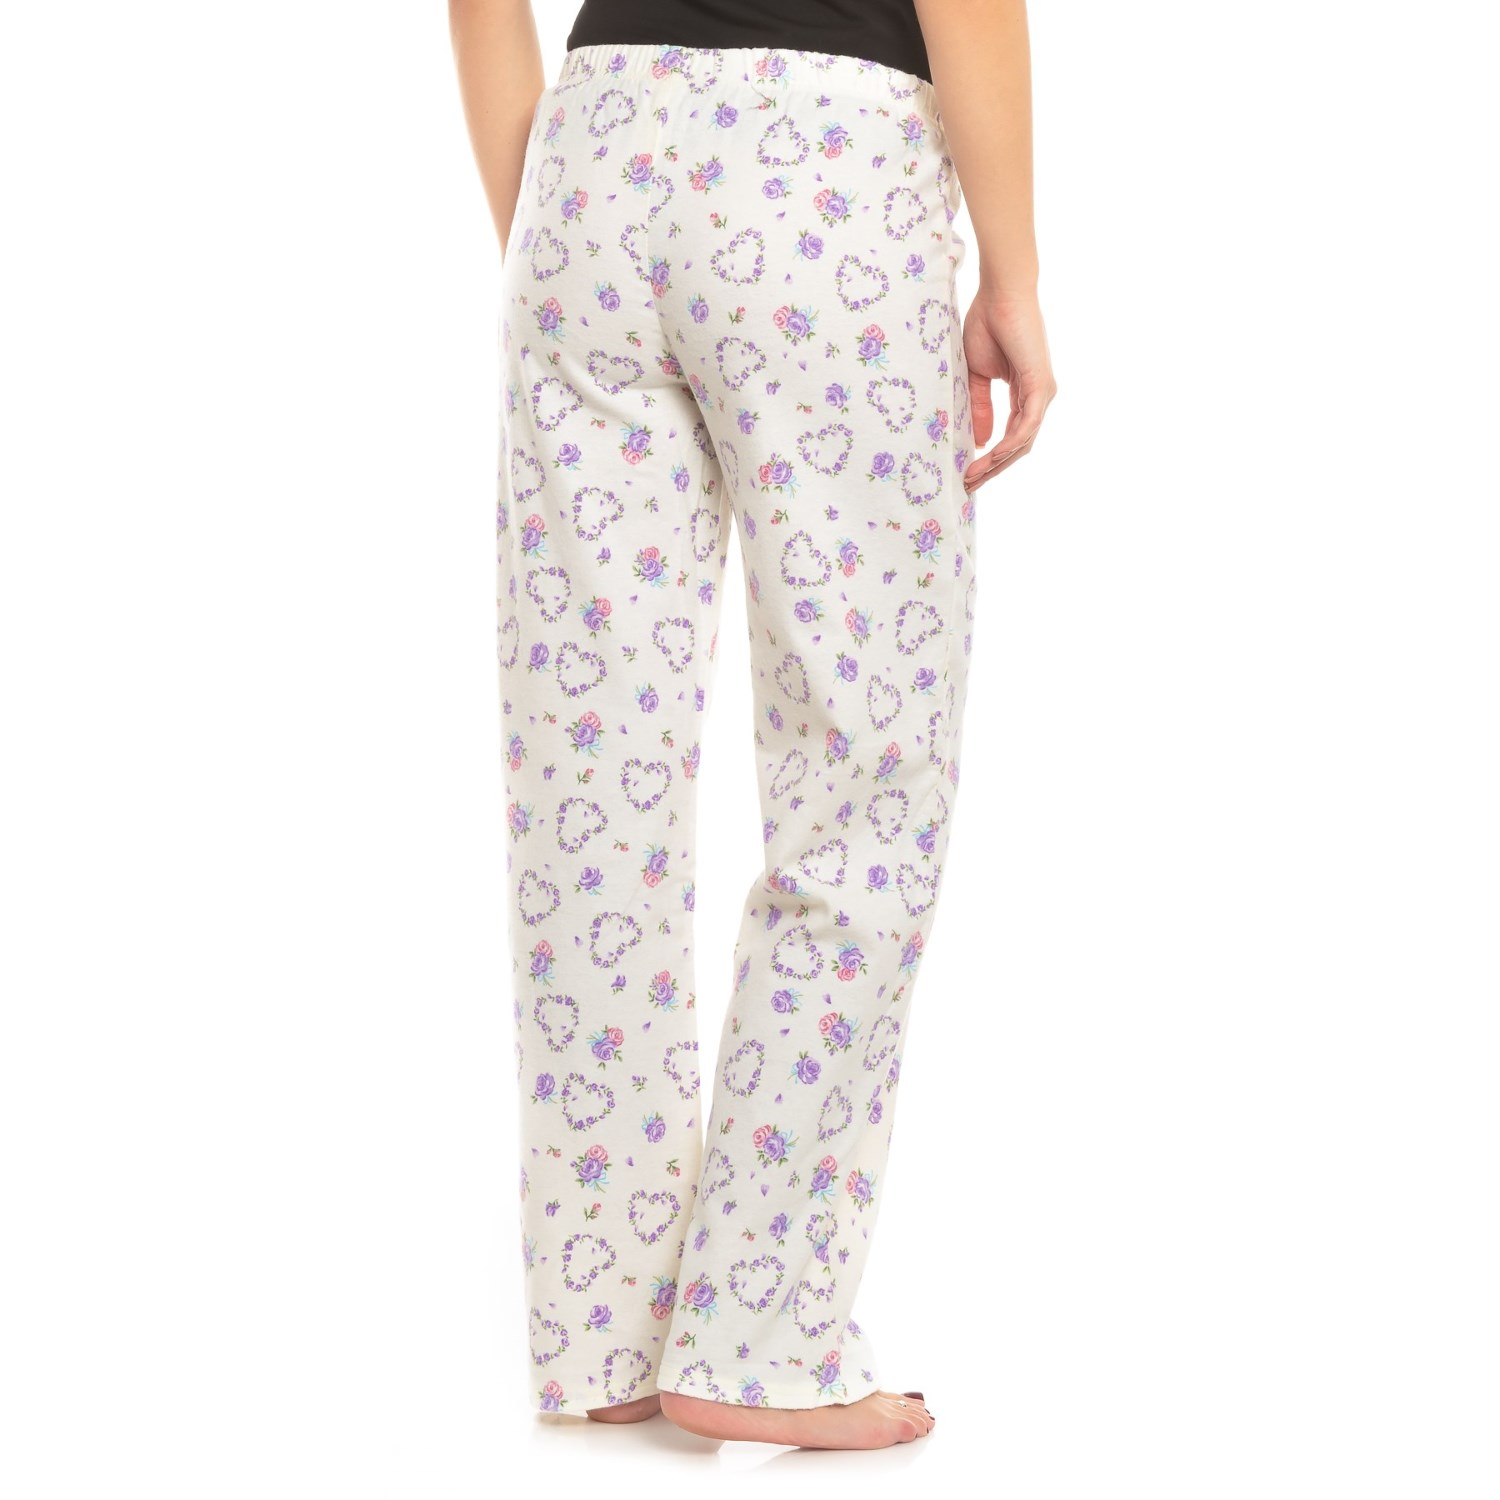 163a9a88b45 KayAnna Printed Flannel Pajama Bottoms (For Women) - Save 56%